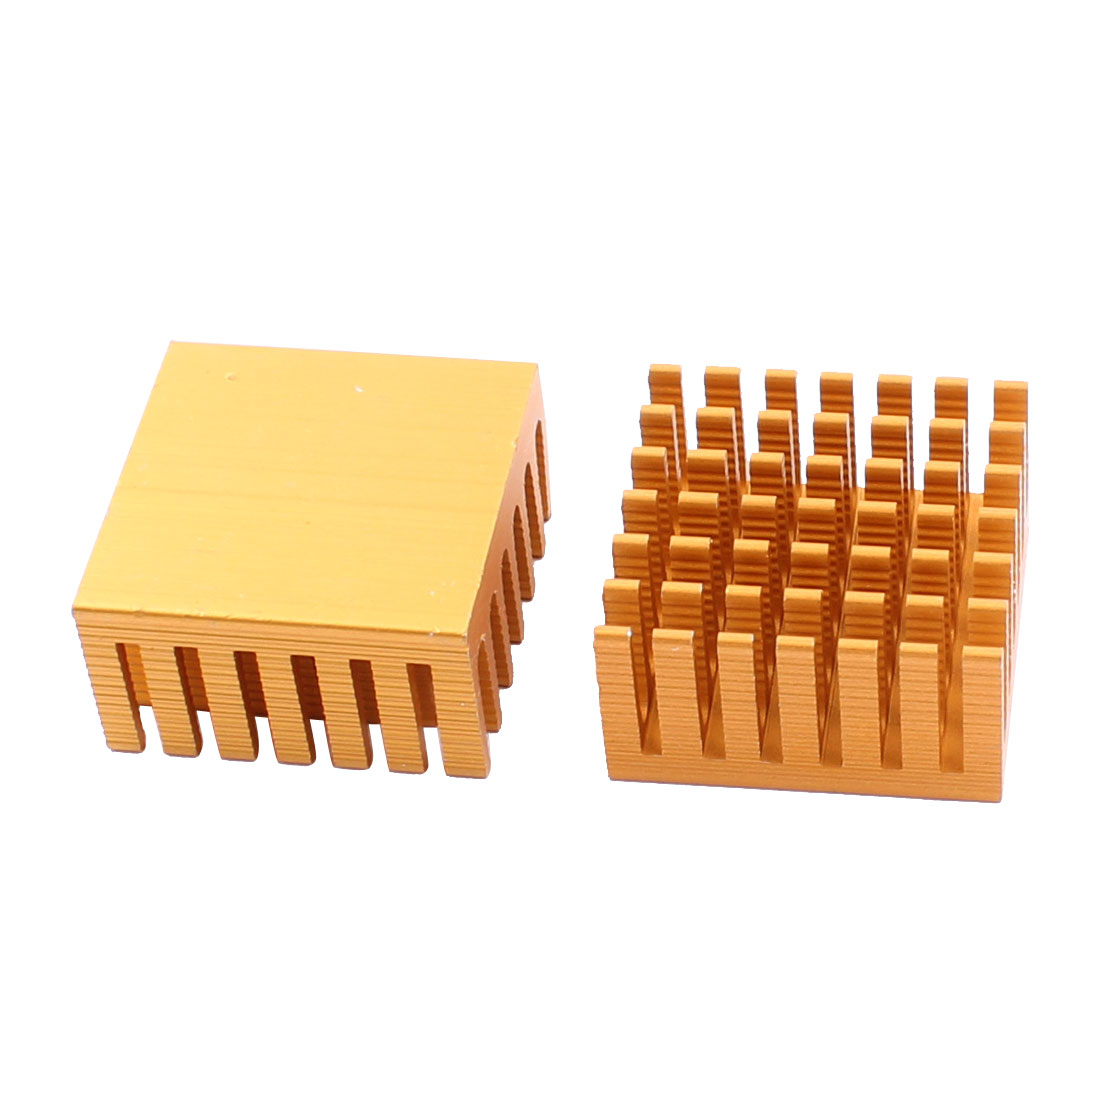 2pcs 28x28x15mm Aluminium Heat Sink Cooler Radiator Fin Heatsink Gold Tone